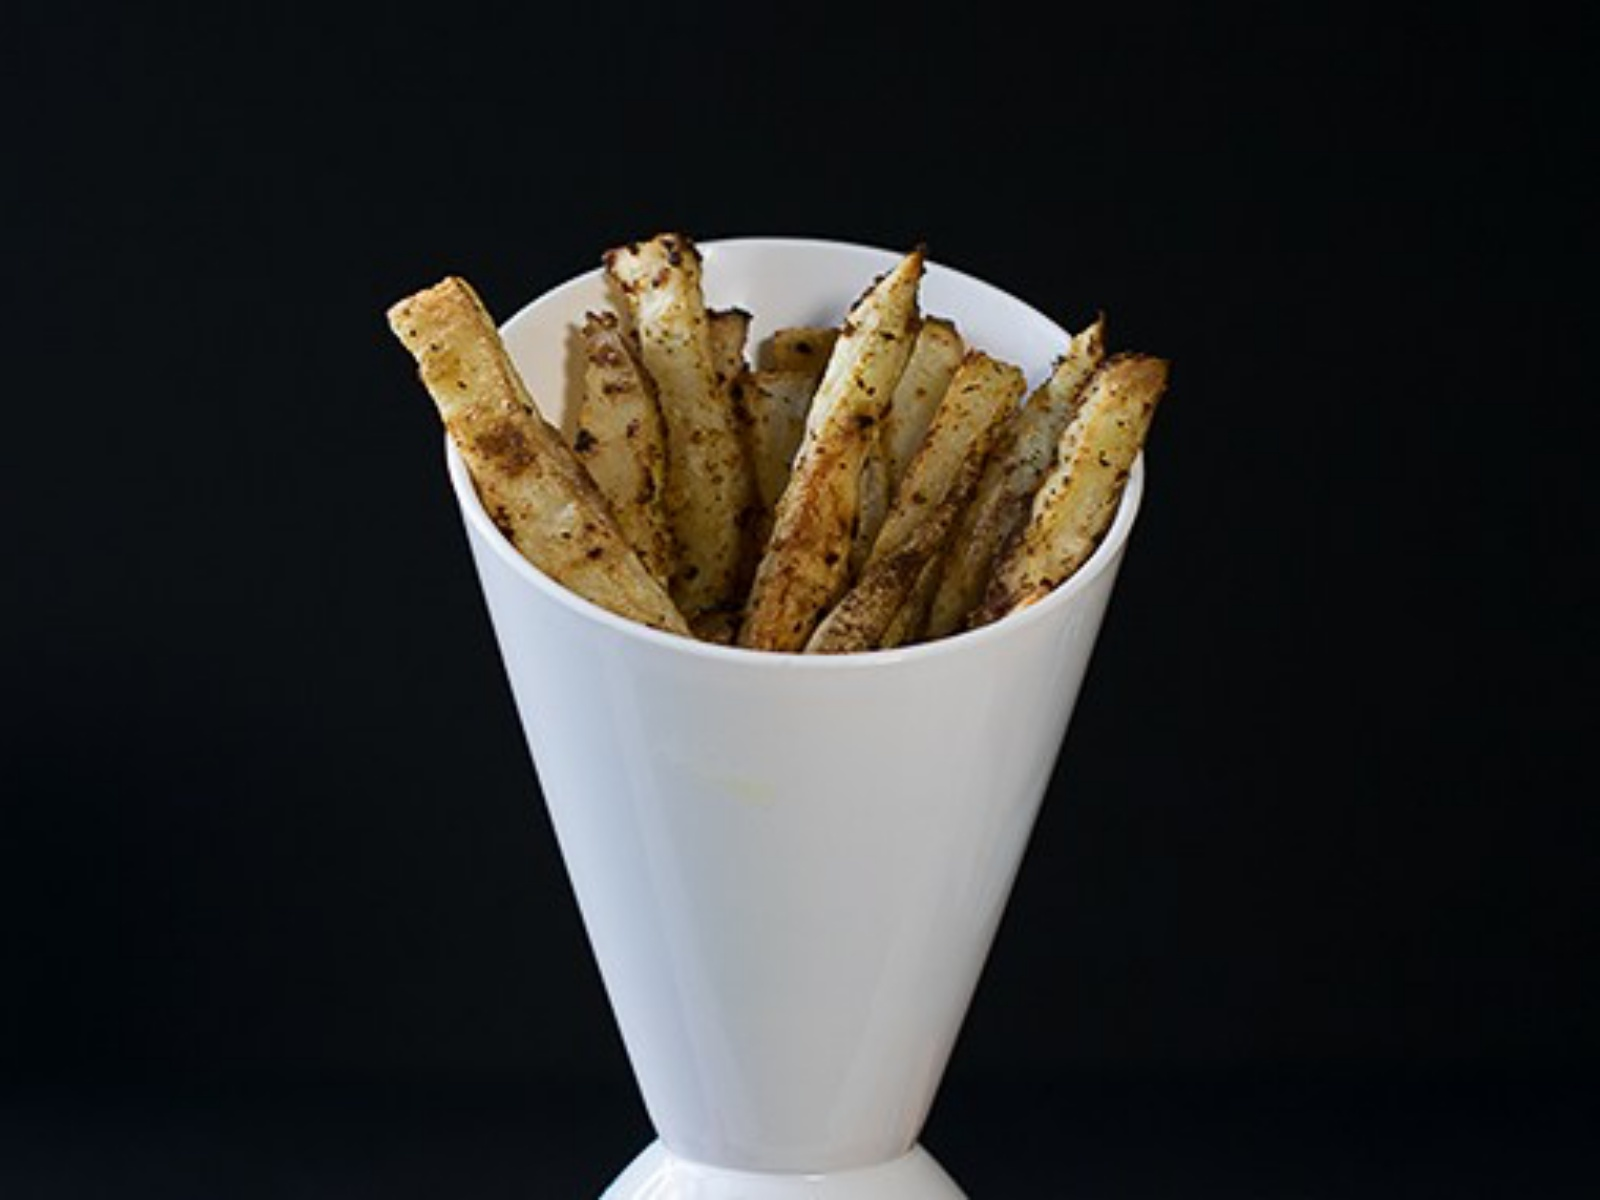 Vegan Chipotle Seasoned French Fries